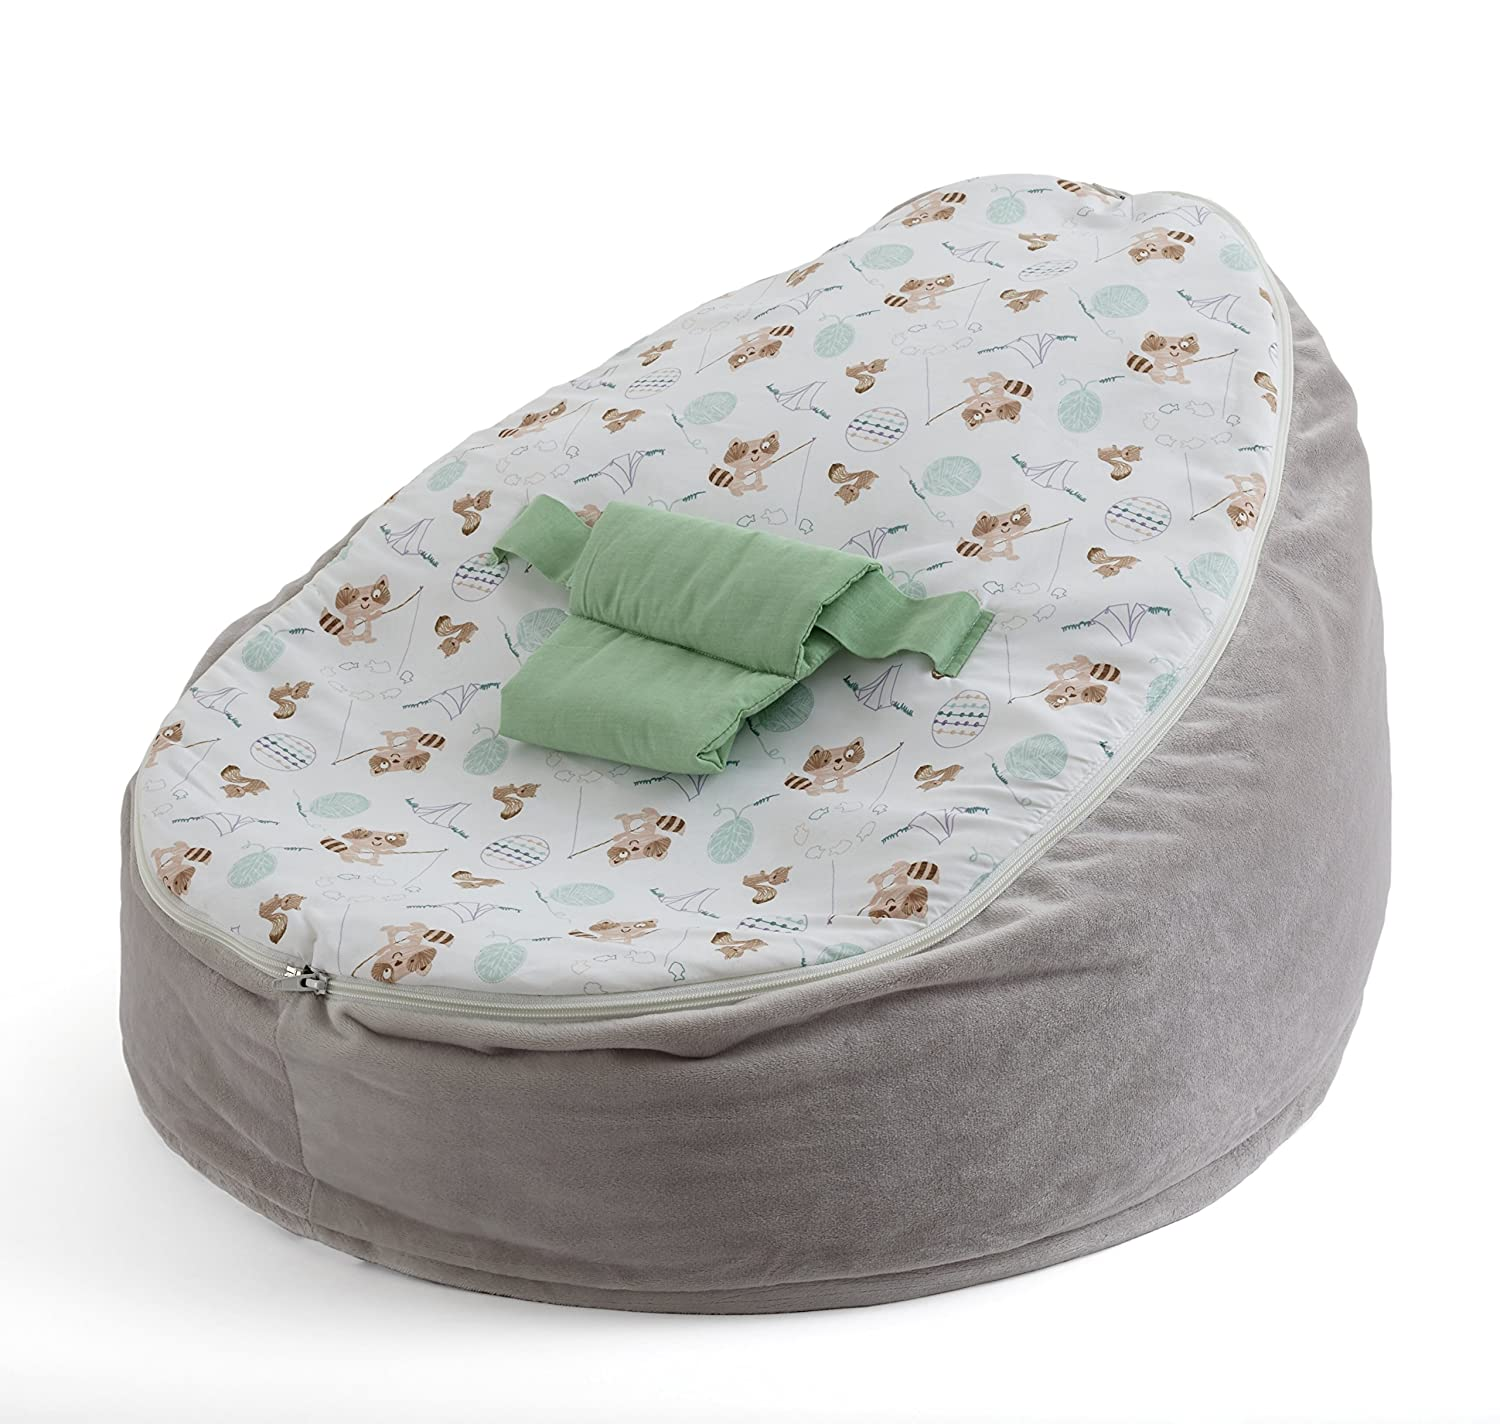 Tutti Bambini Outdoor Adventure Bean Bag Amazoncouk Baby